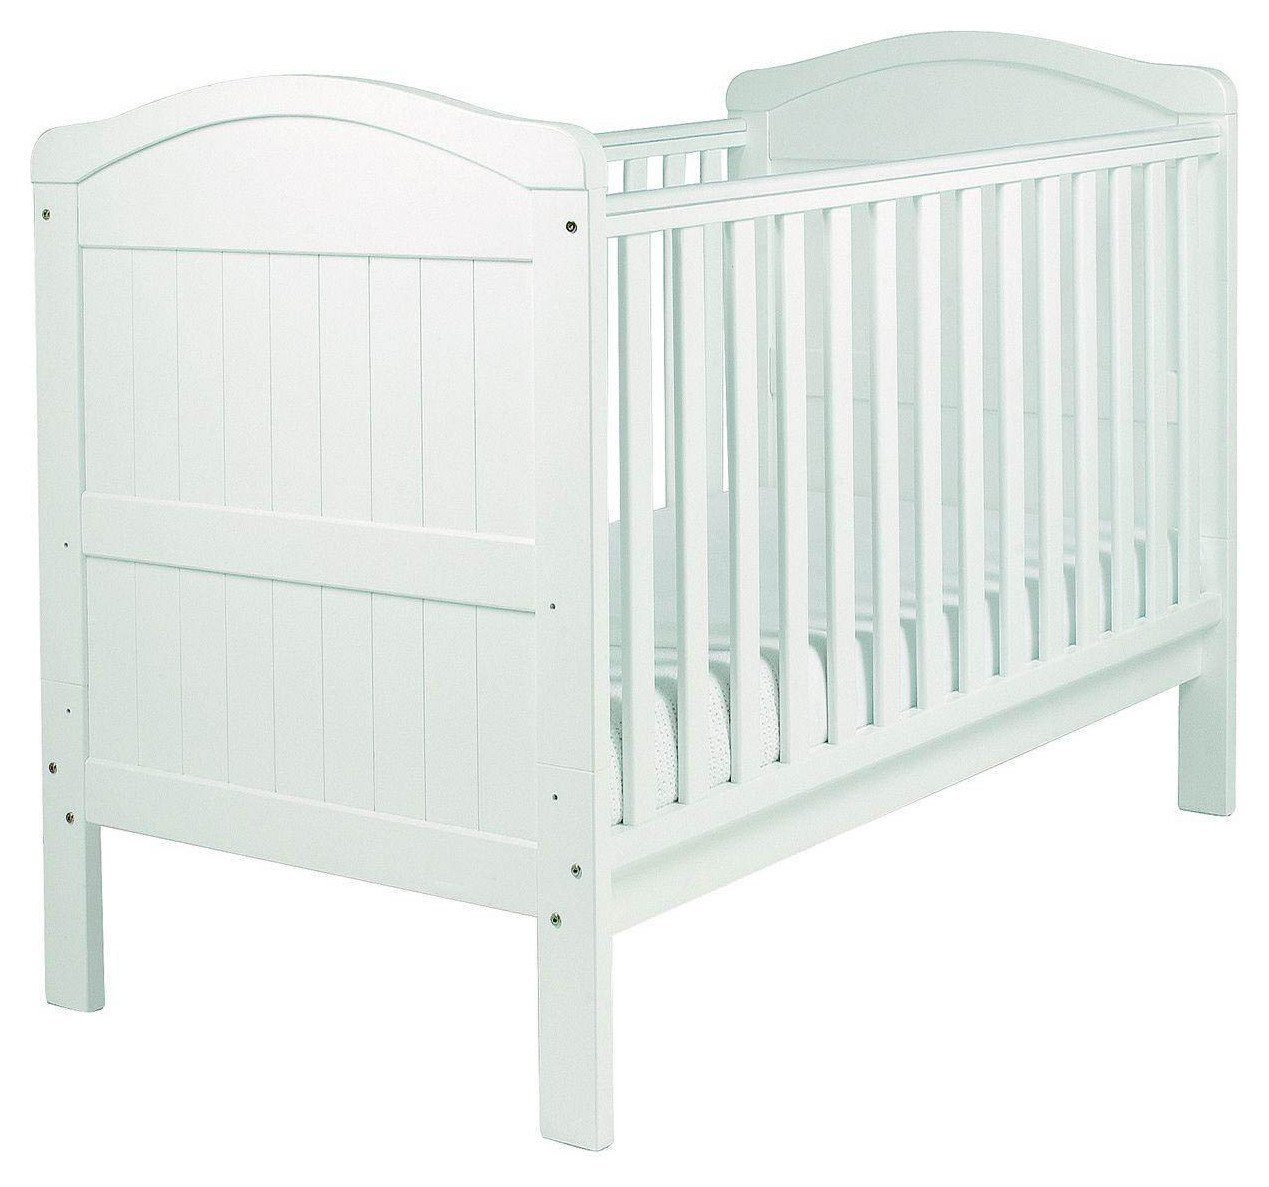 East Coast Nursery Country Cot Bed - White